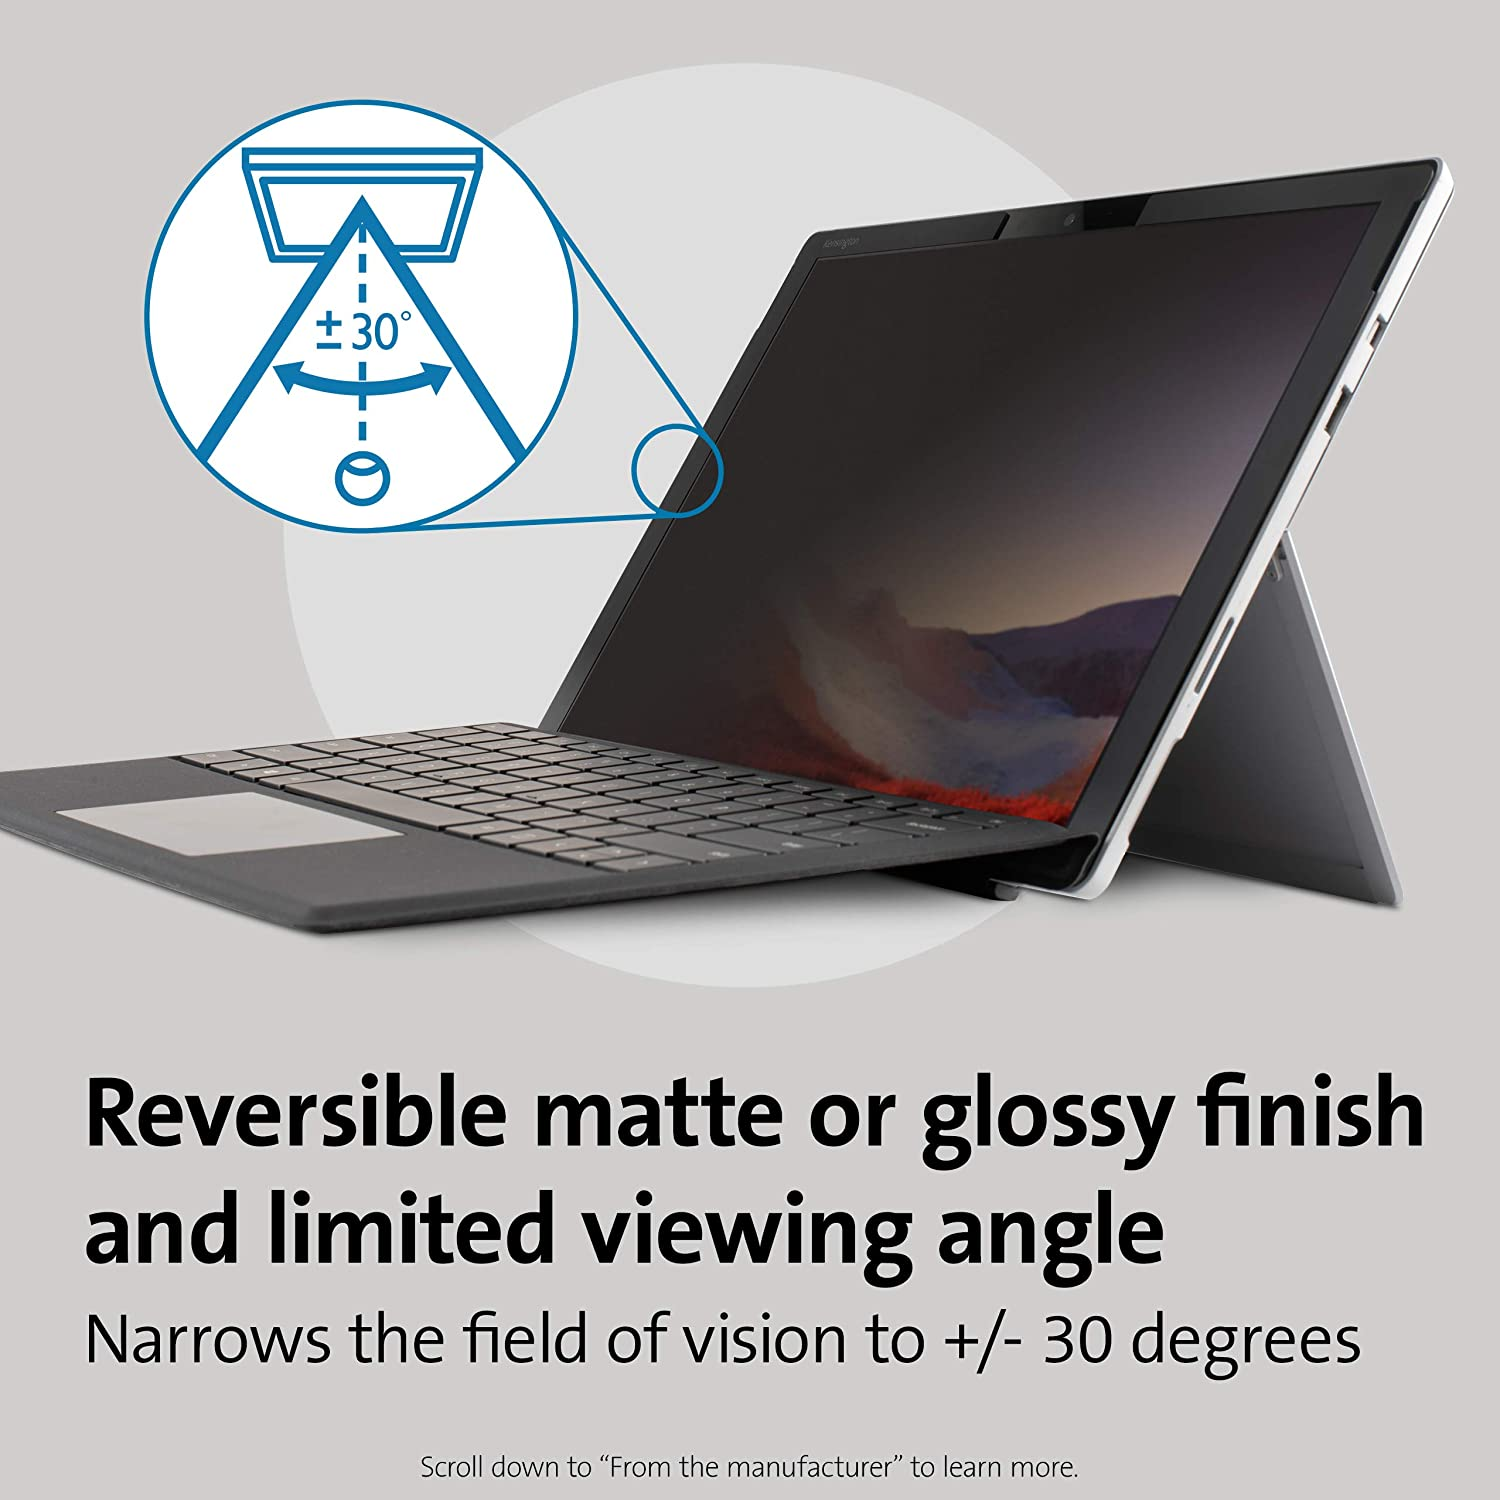 K50730WW /& 4 6 5 Kensington Surface Pro Privacy Screen Filter MagPro Elite Magnetic Privacy Screen for Surface Pro 7